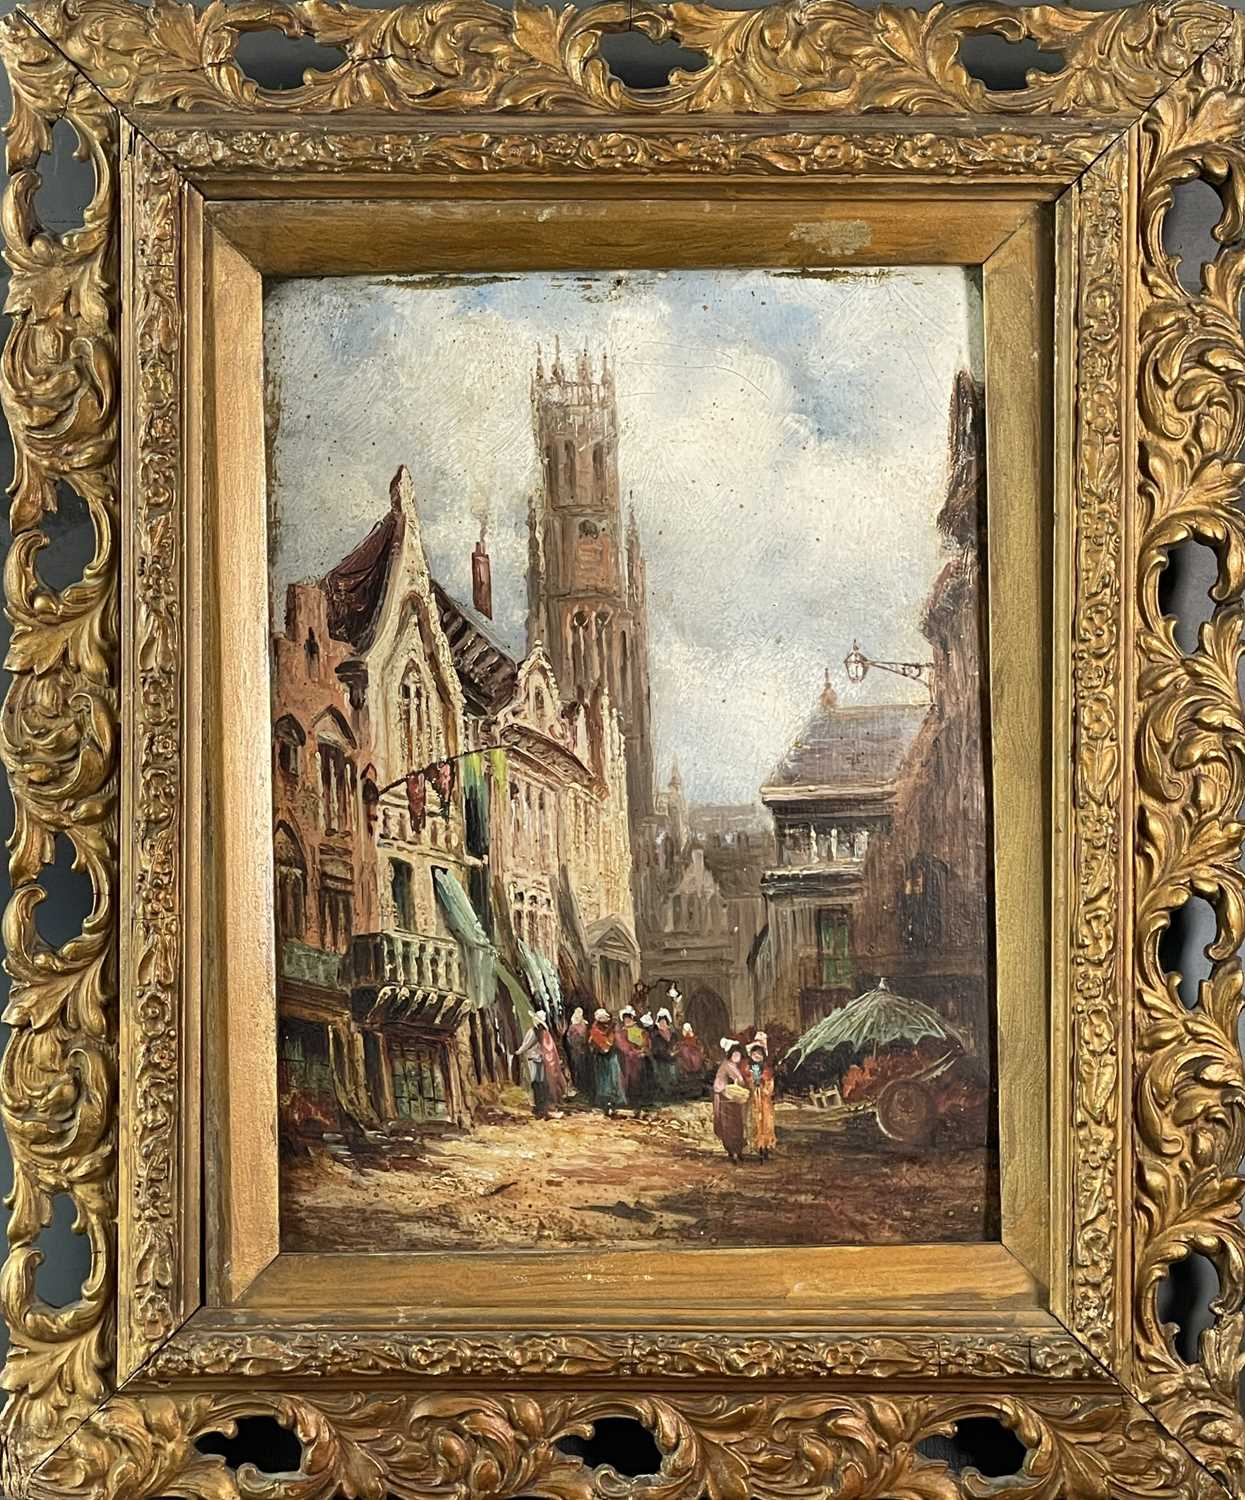 Follower of Henry Thomas SCHAEFER (1854-1915) Town Streets Oil on canvas Indistinctly signed - Image 6 of 7